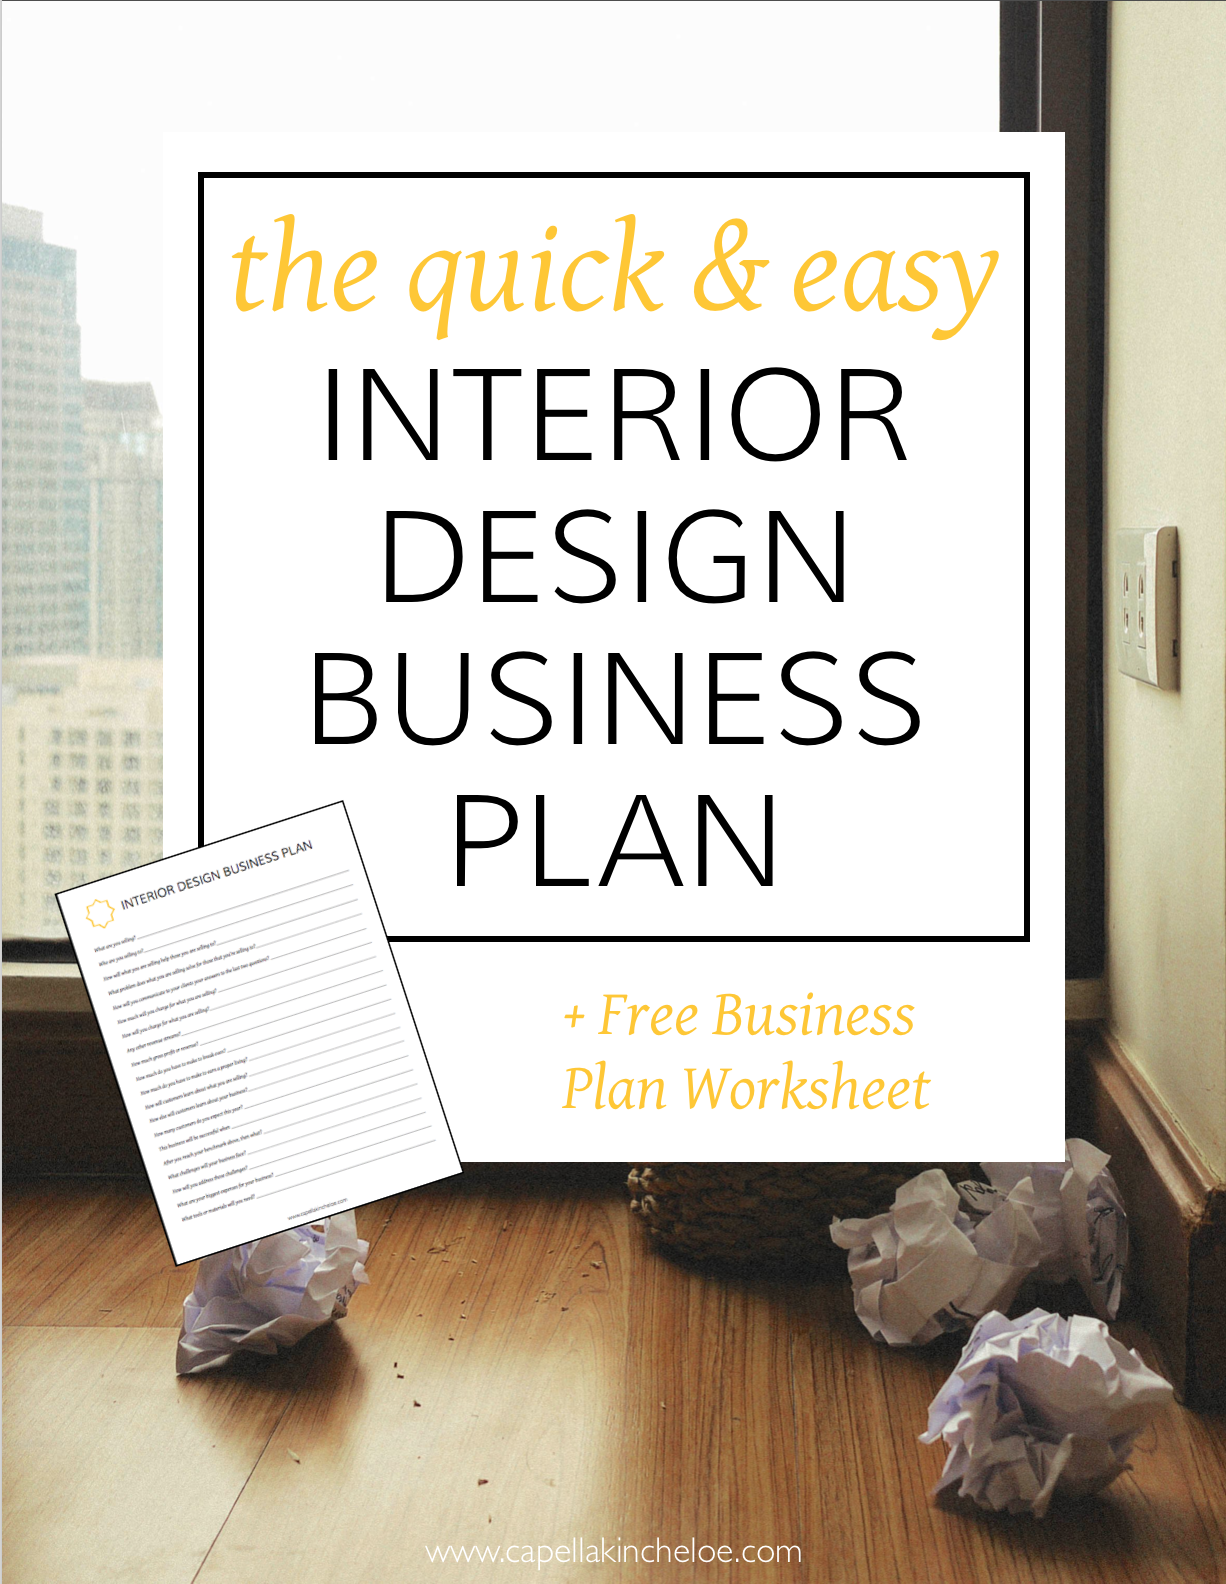 Business Plans Shouldn T Be Hard This Quick And Easy